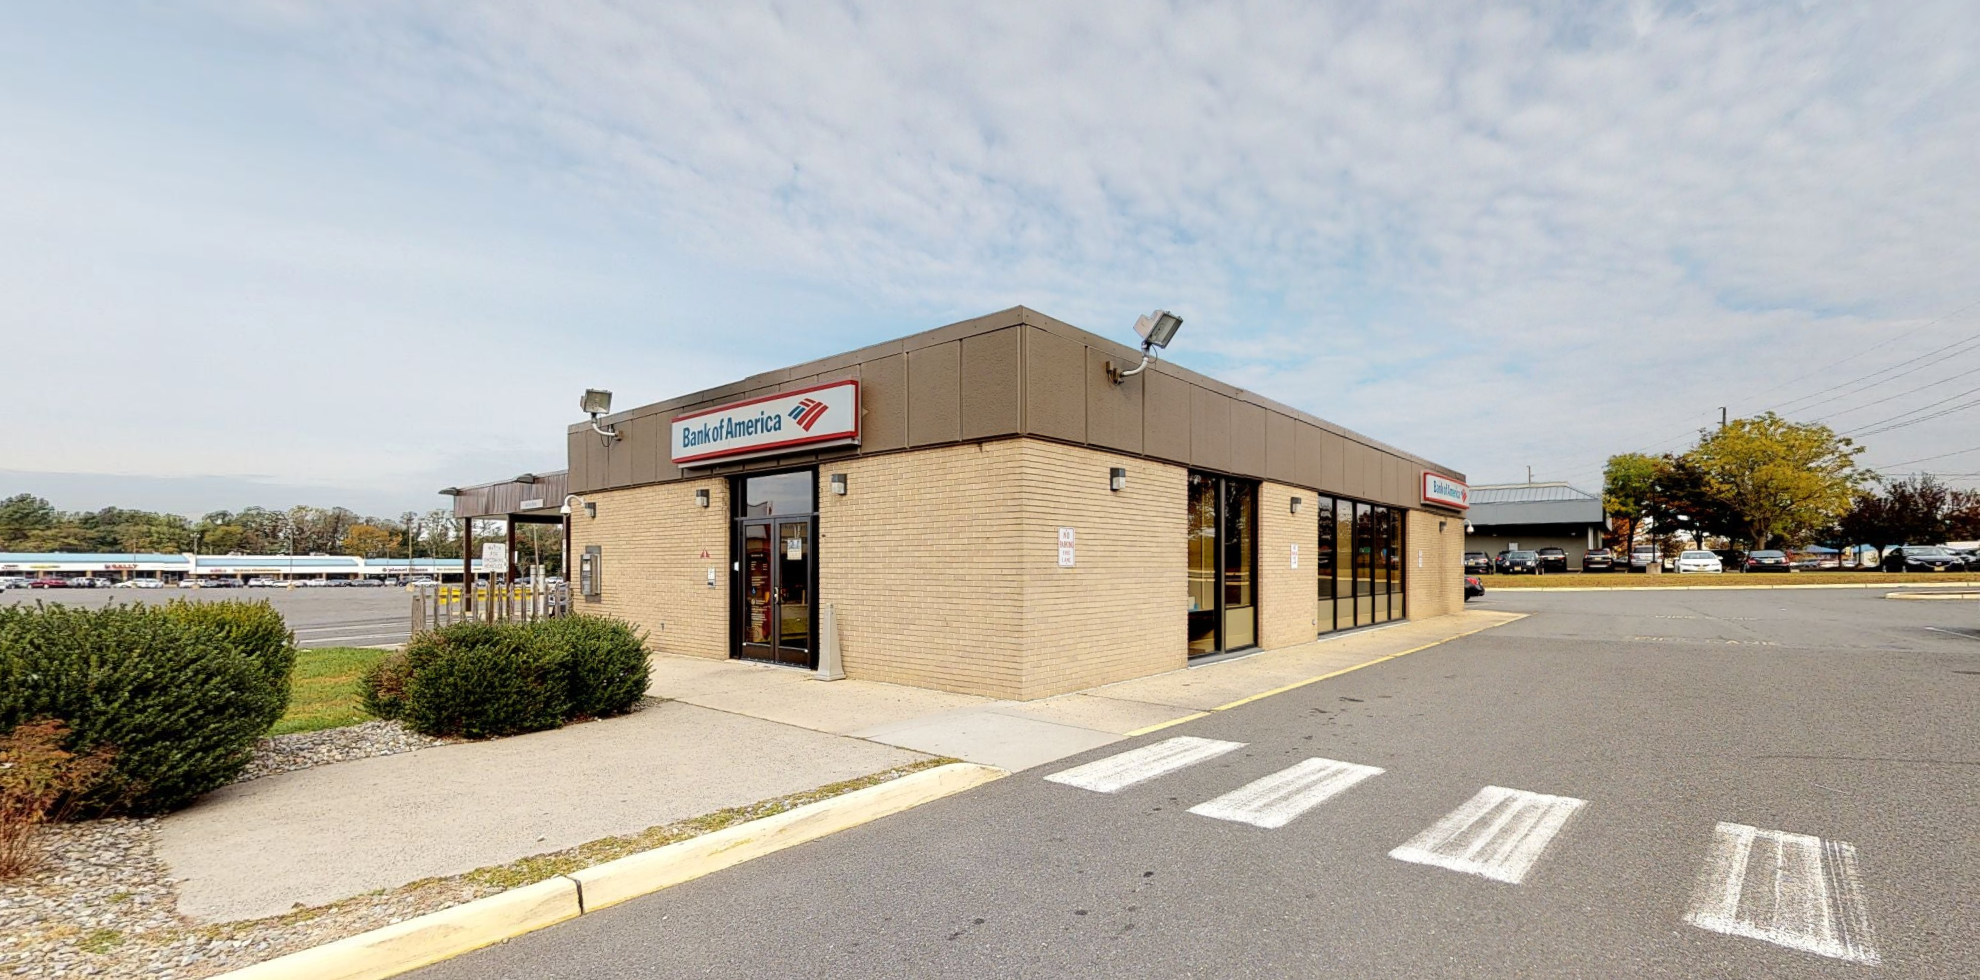 Bank of America financial center with drive-thru ATM   2 Bethany Rd, Hazlet, NJ 07730